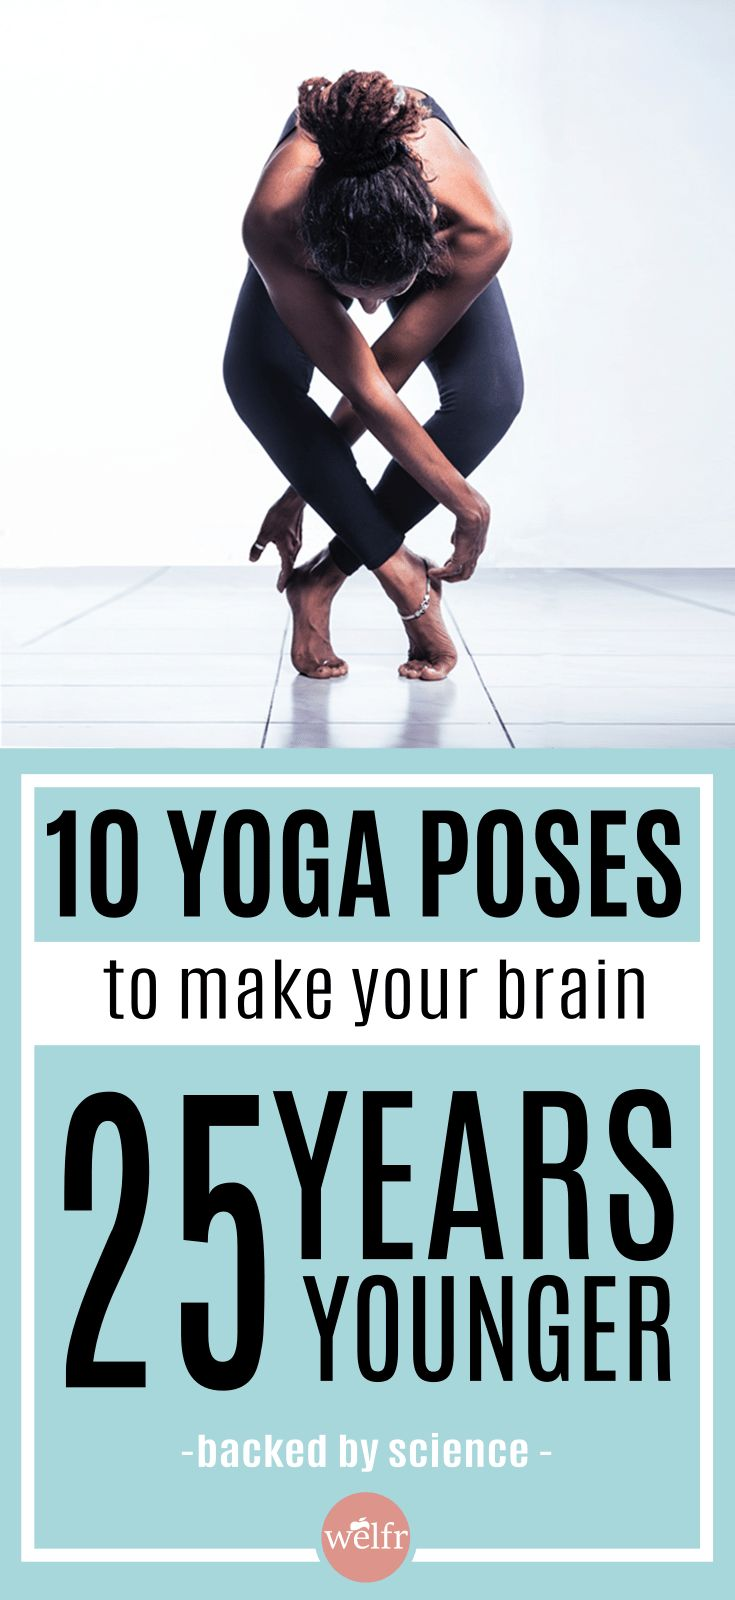 -These 10 Yoga Poses For Beginners Will Make Your Brain 25 Years Younger Accordi...